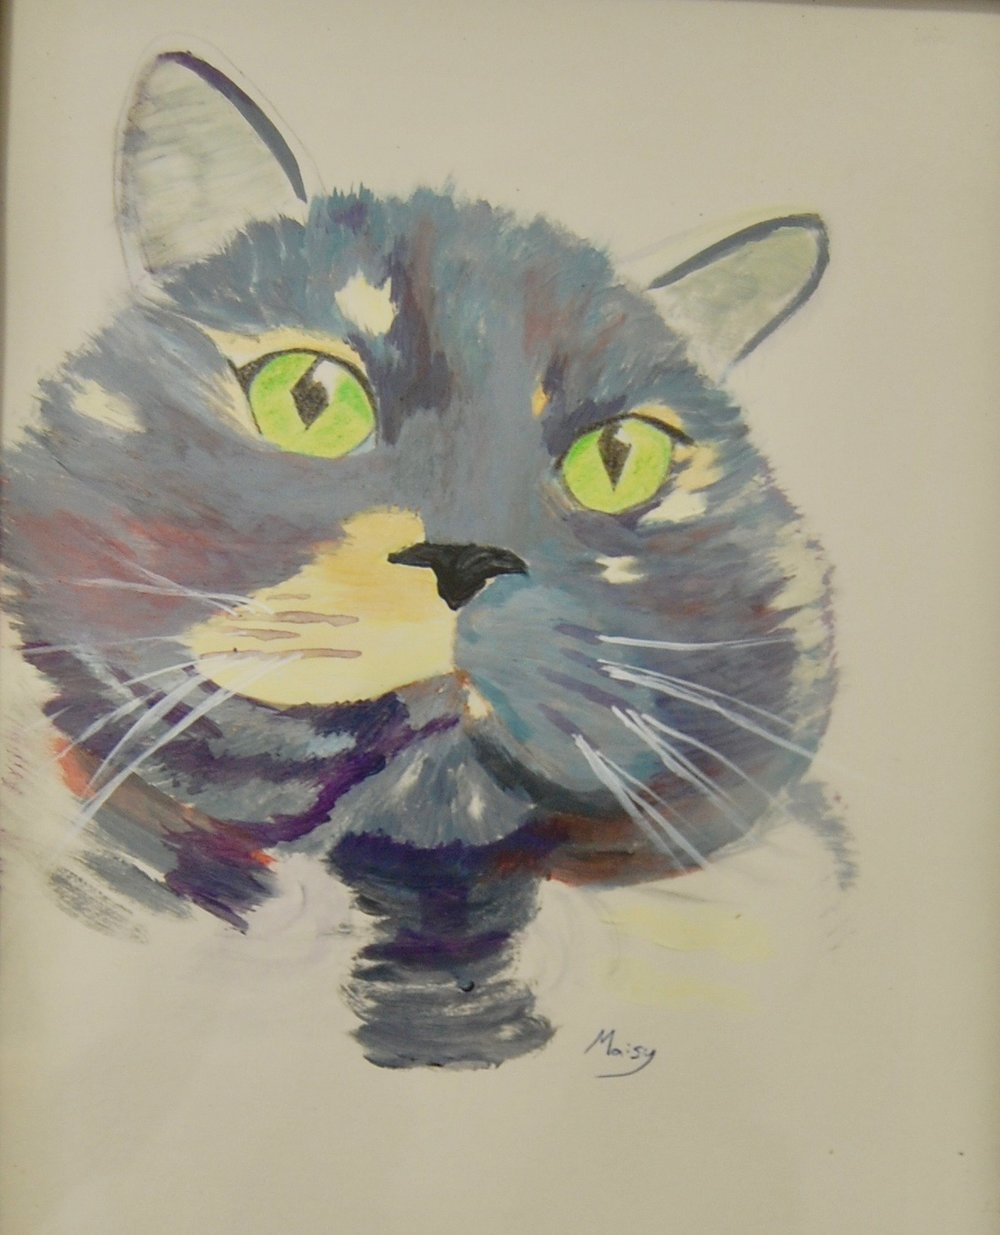 To help her find her family, Maisy has been featured in our art show located at Cat Town. The piece has been donated by the artist and her lucky adopter will take home the piece to commemorate the occasion.